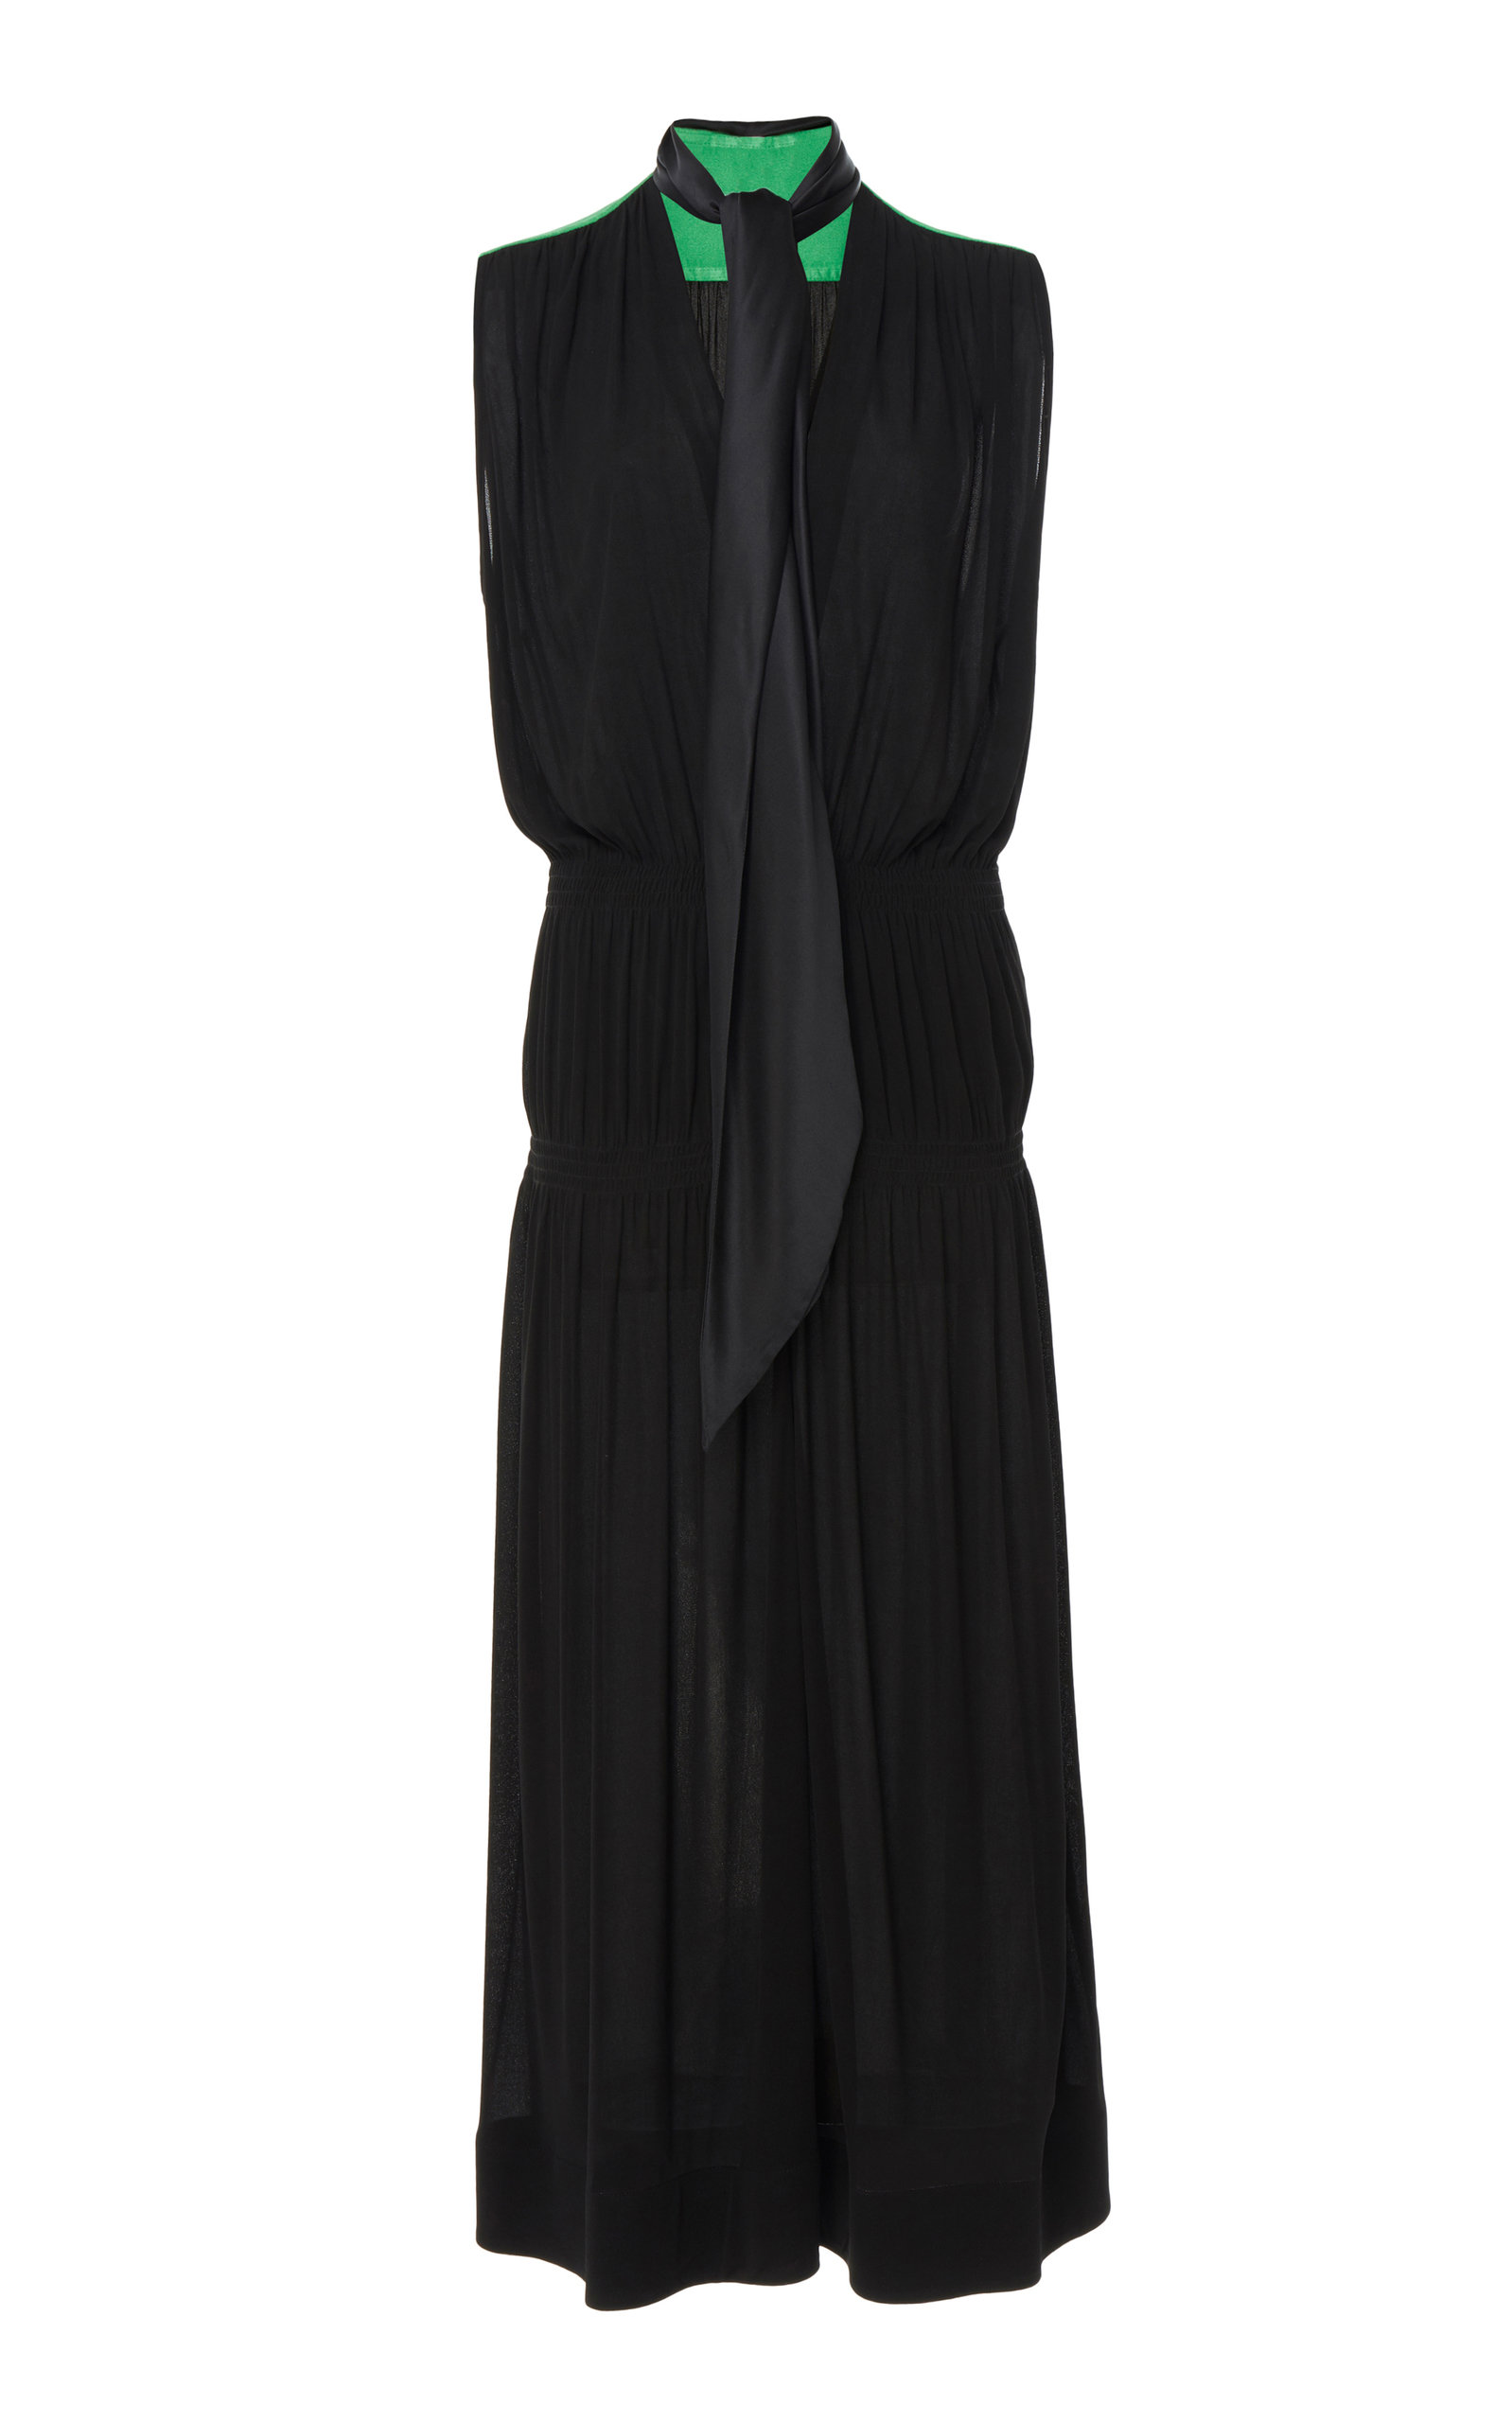 Buy Givenchy Two-Tone Tie-Detailed Georgette Midi Dress online, shop Givenchy at the best price